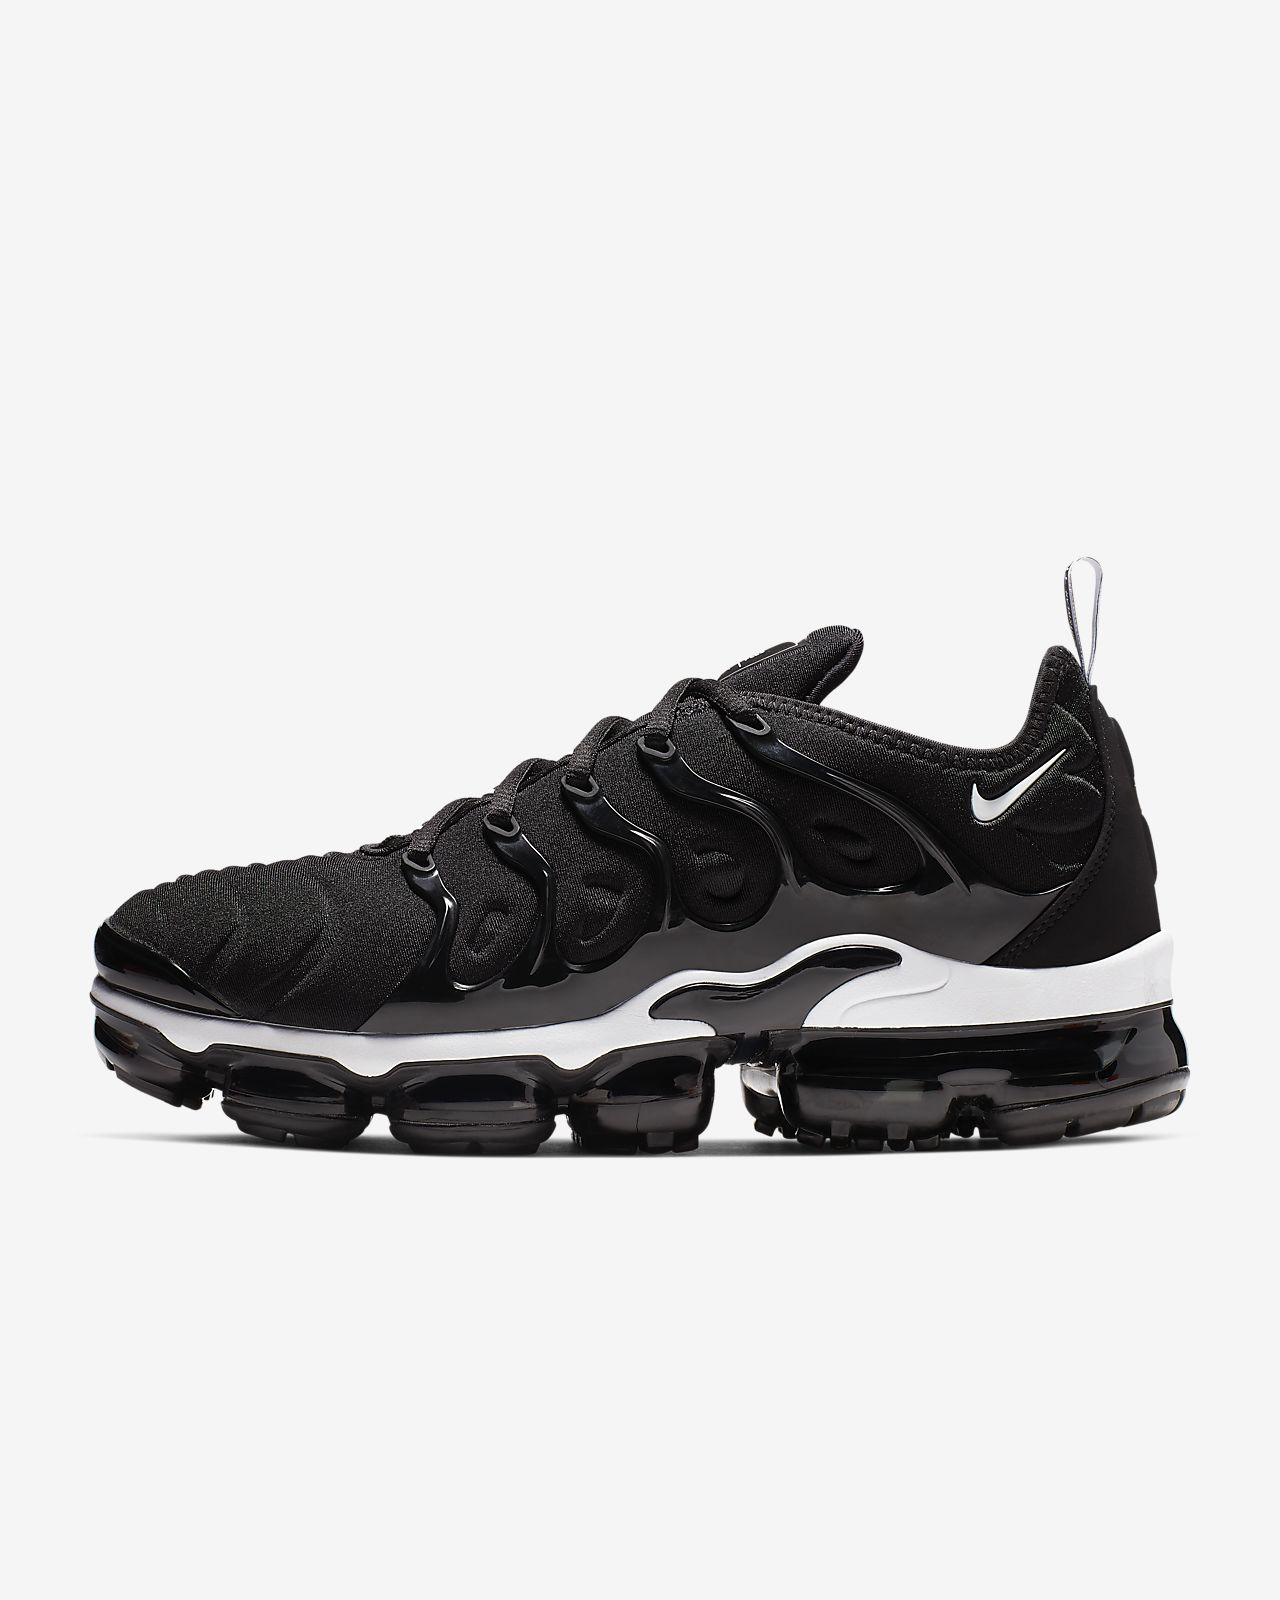 6662d5d045c Nike Air VaporMax Plus Men s Shoe. Nike.com CA